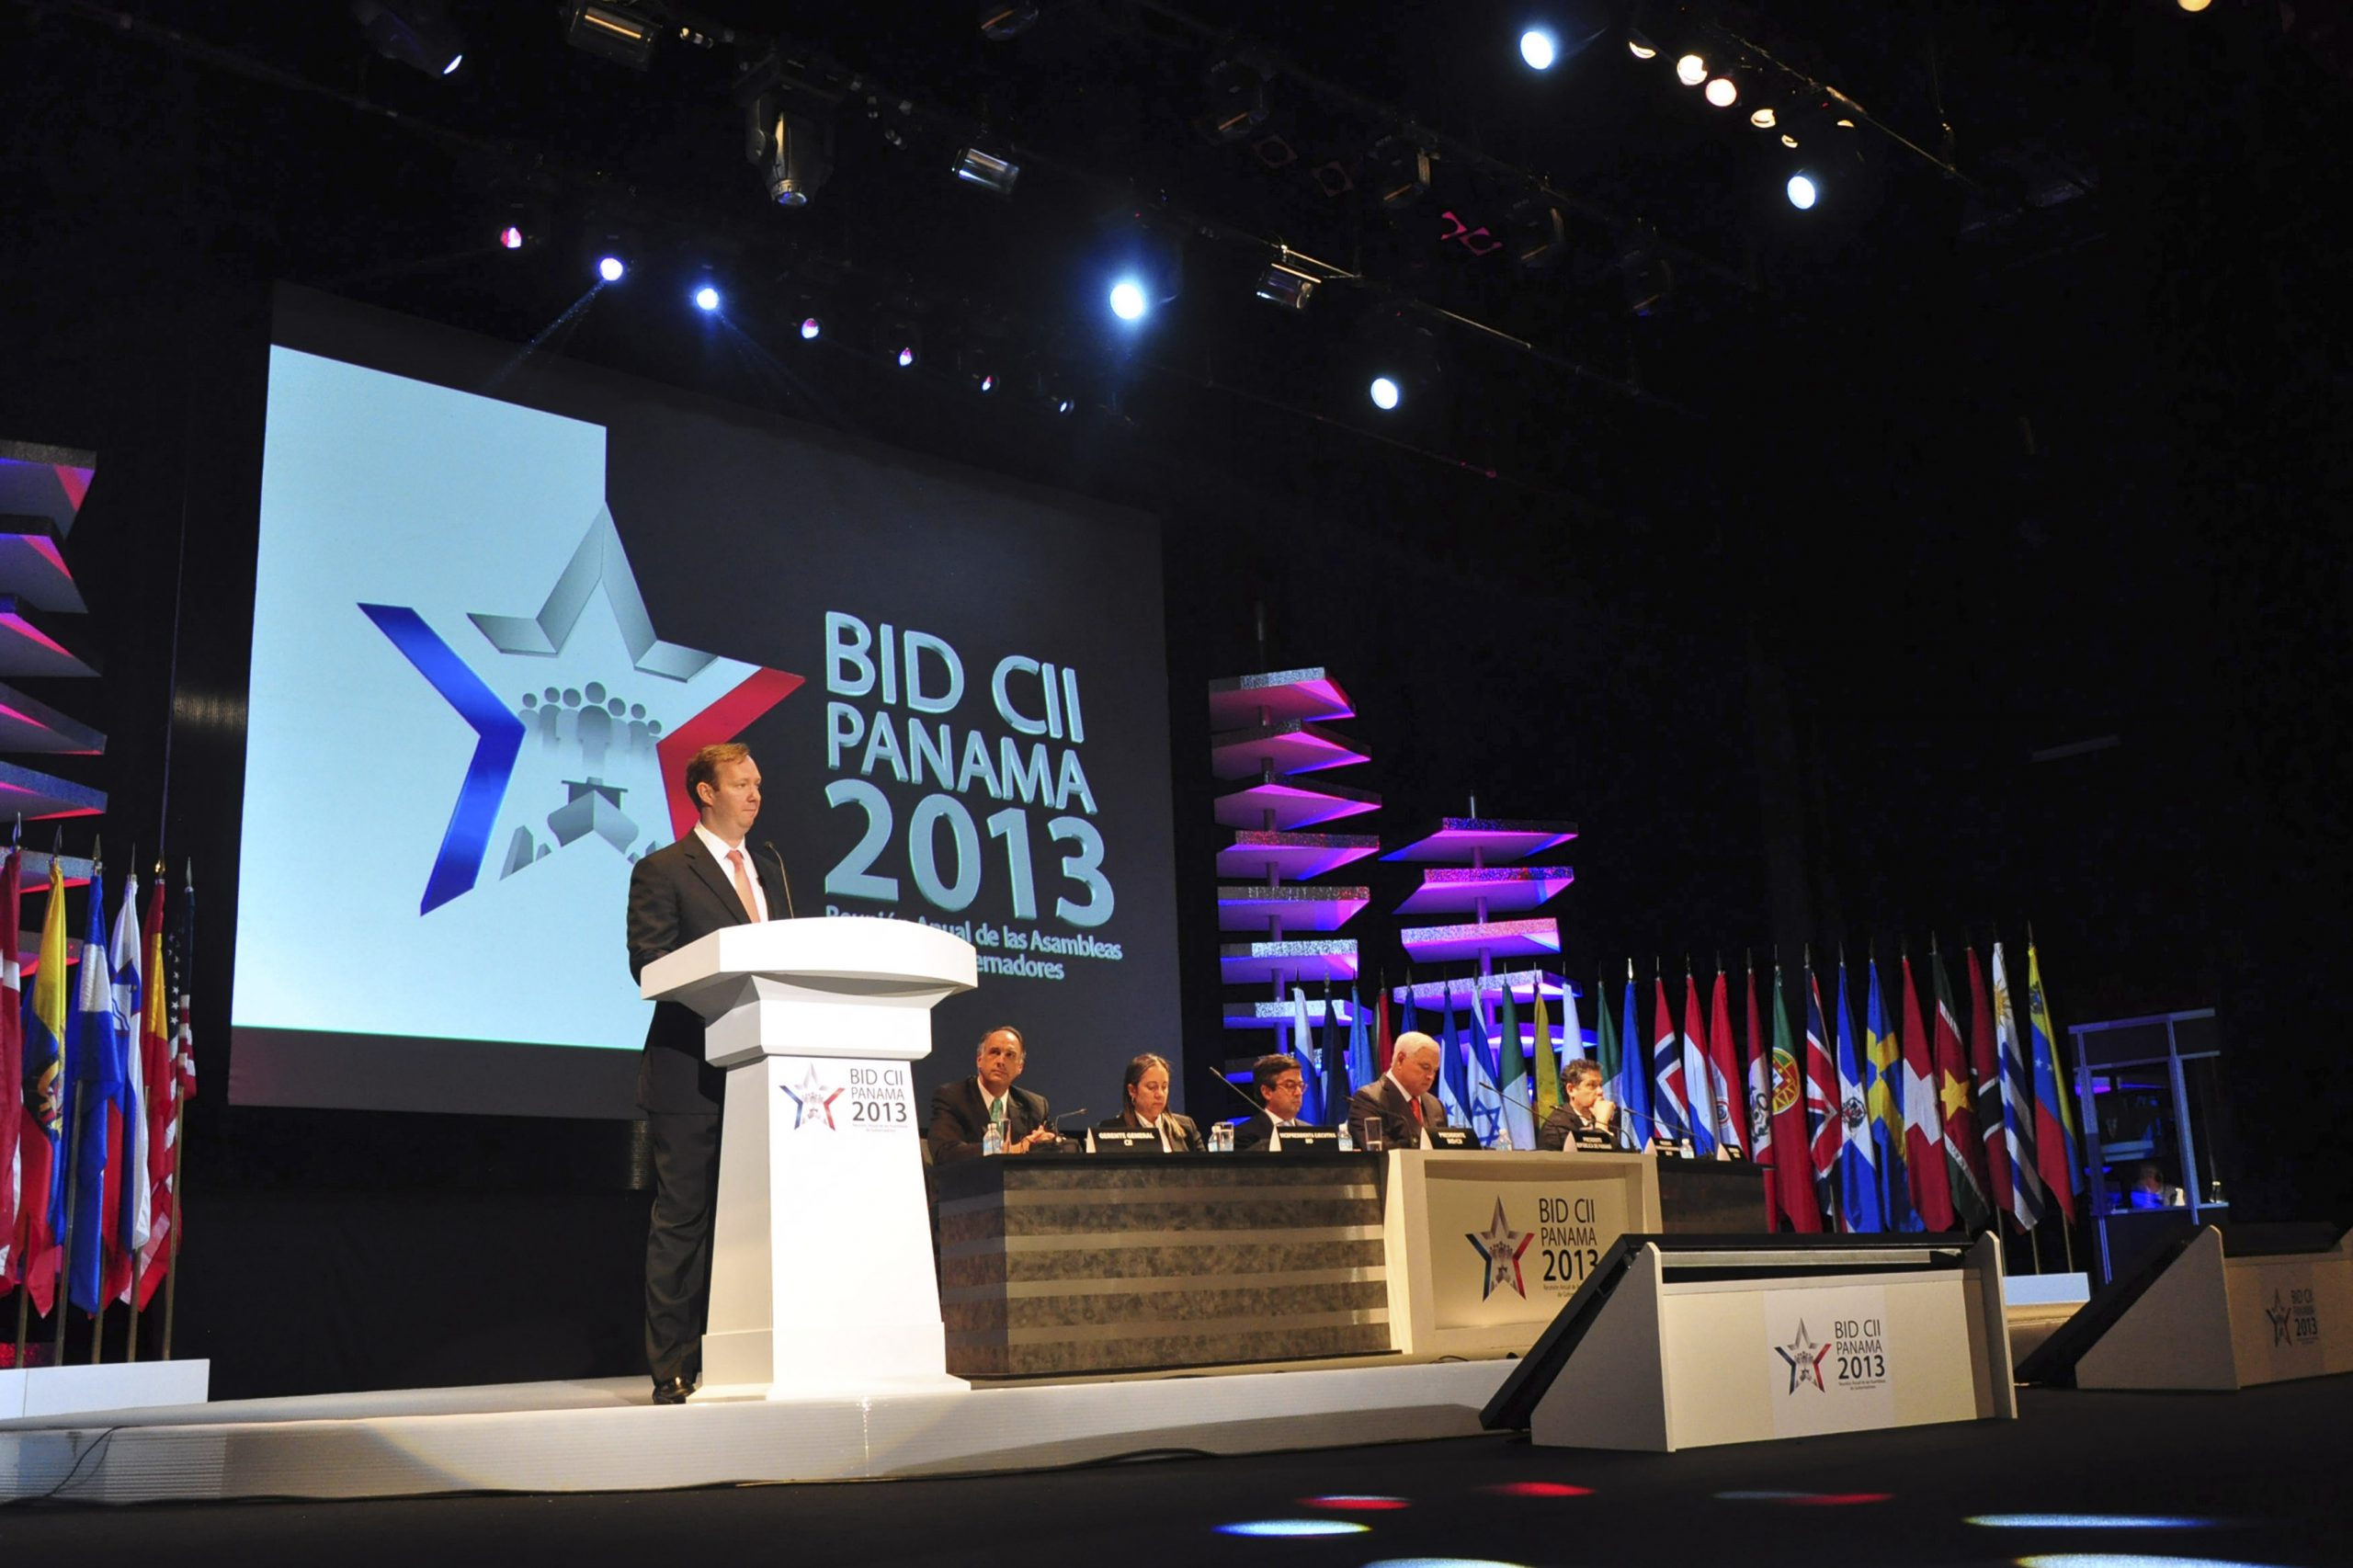 Frank de Lima, Panama's Minister of Finance and Chairman of the Board of Governors of IDB, speaks during annual meeting of the Bank's Board of Governors in Panama